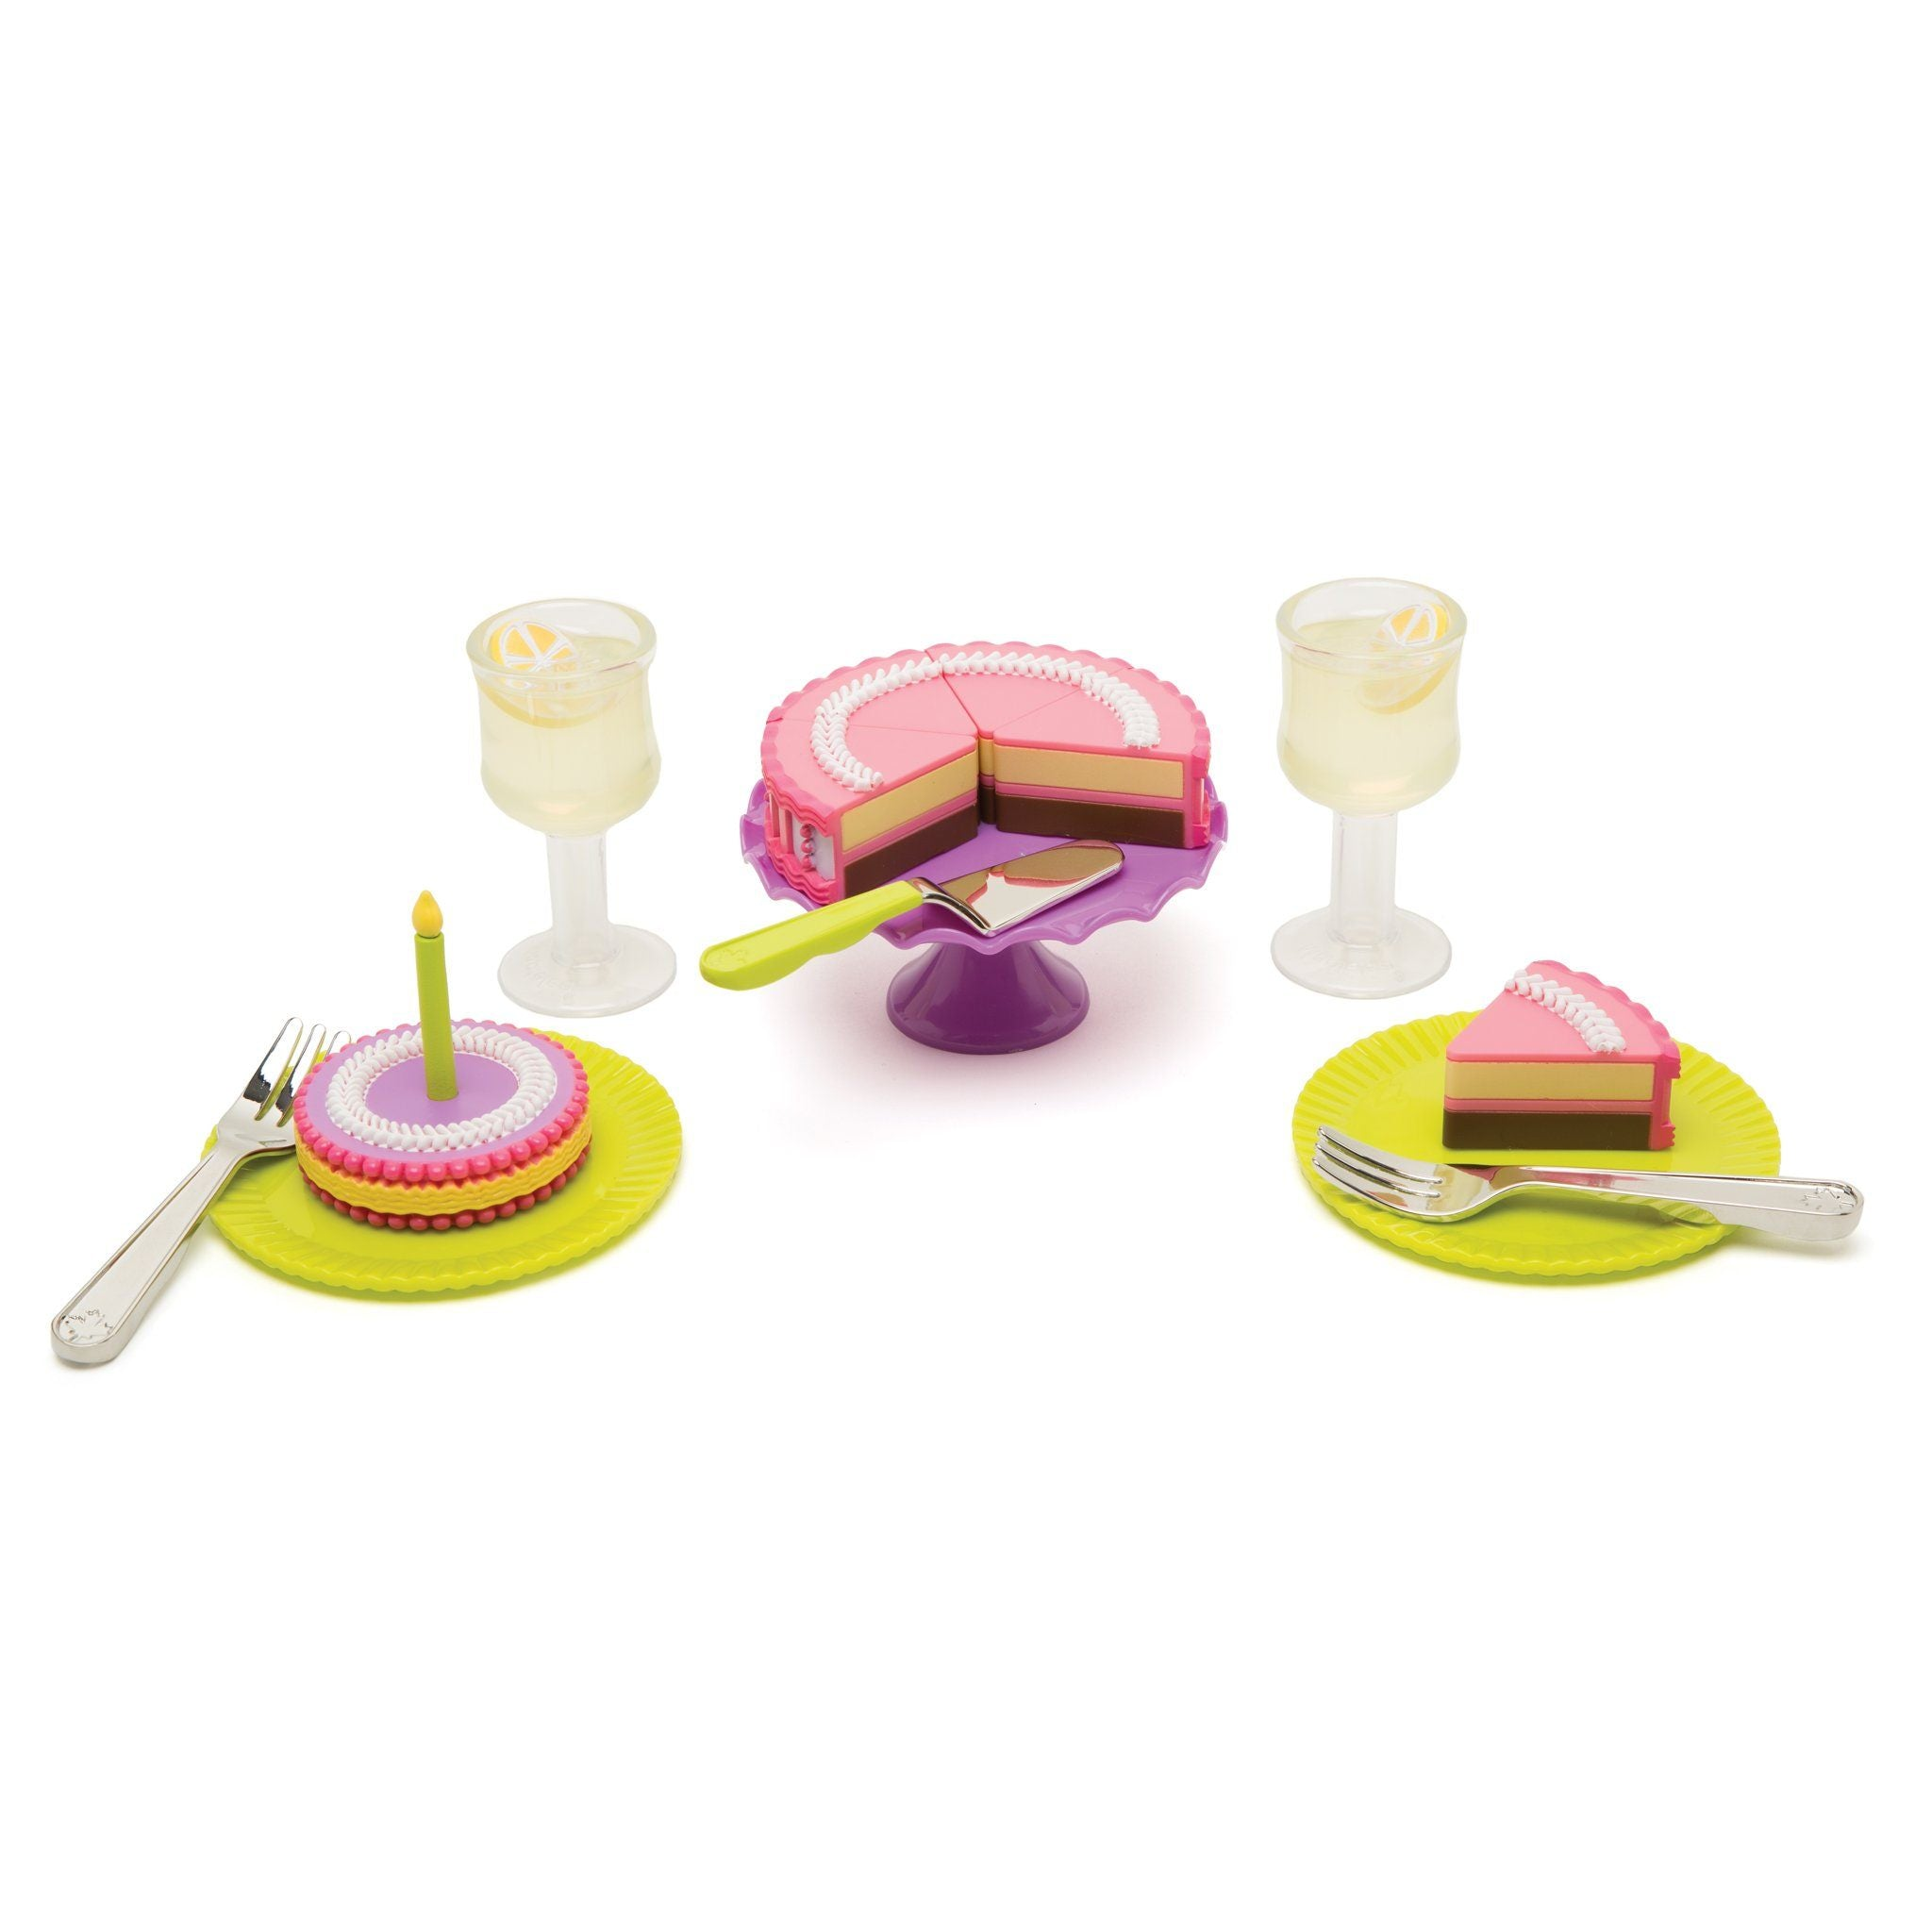 Set to Celebrate plastic and metal pieces: Cake with removable slices, cake stand, plates, metal forks, lemonade drinks for all 18 inch dolls.